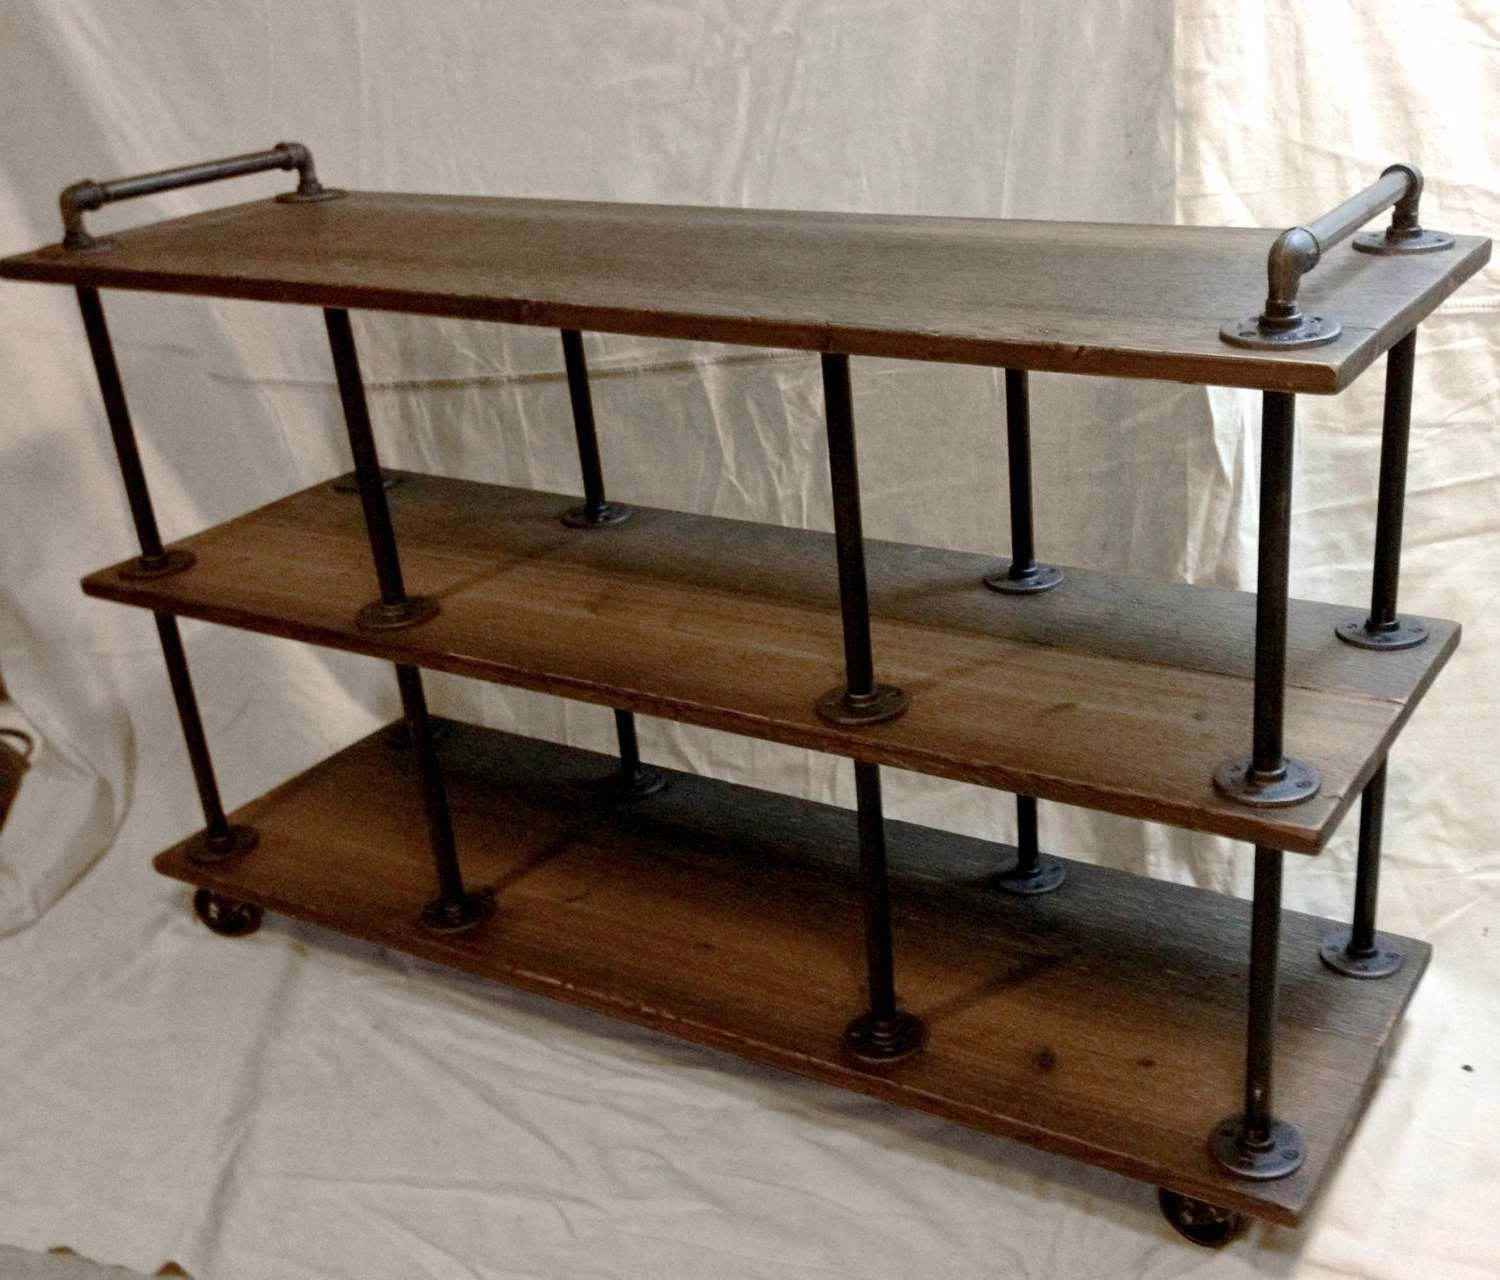 Industrial Tv Stand Iron And Wood For 46 To 52 With Regard To Rustic Tv Cabinets (View 19 of 20)